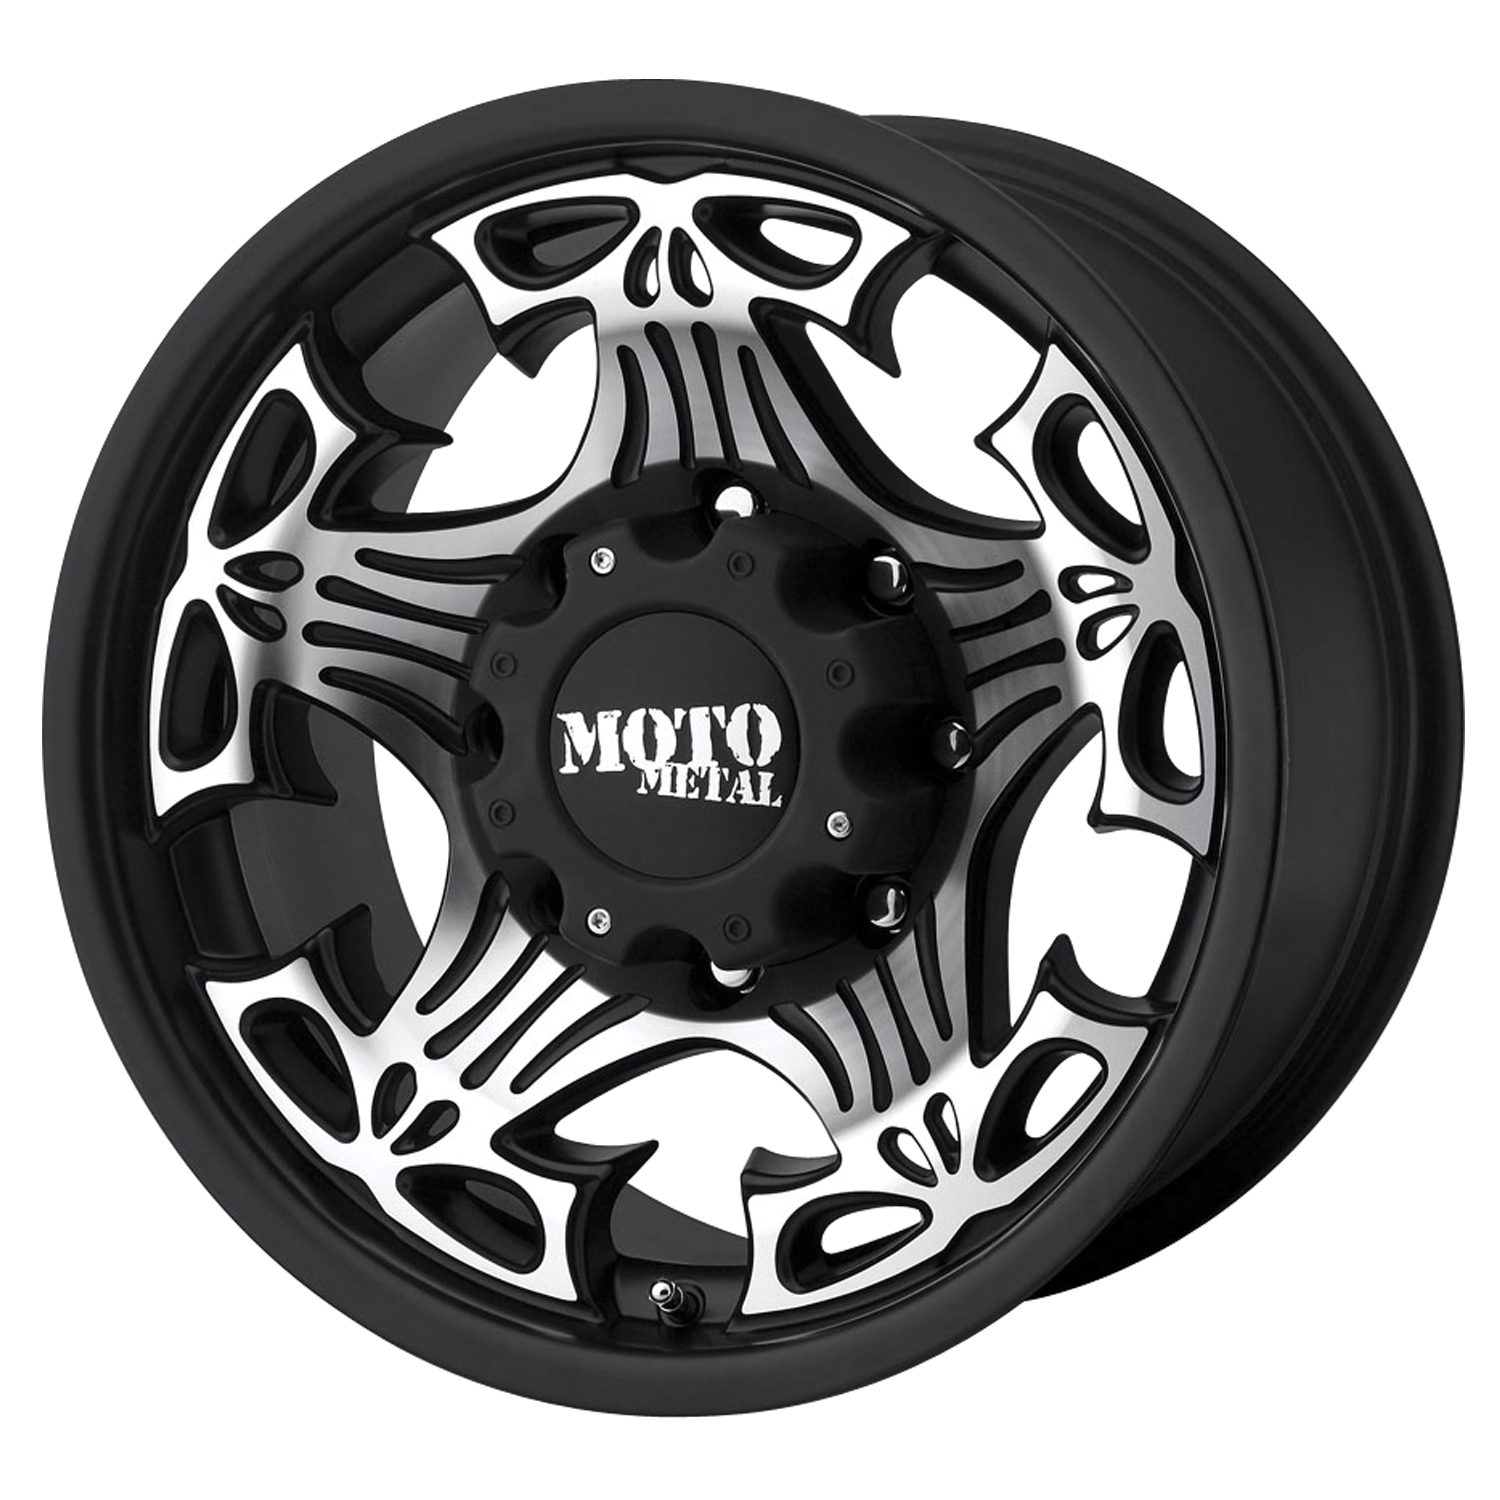 new products from summit racing equipment proryde leveling kits Trailer Leveling Kit moto metal skull black wheels